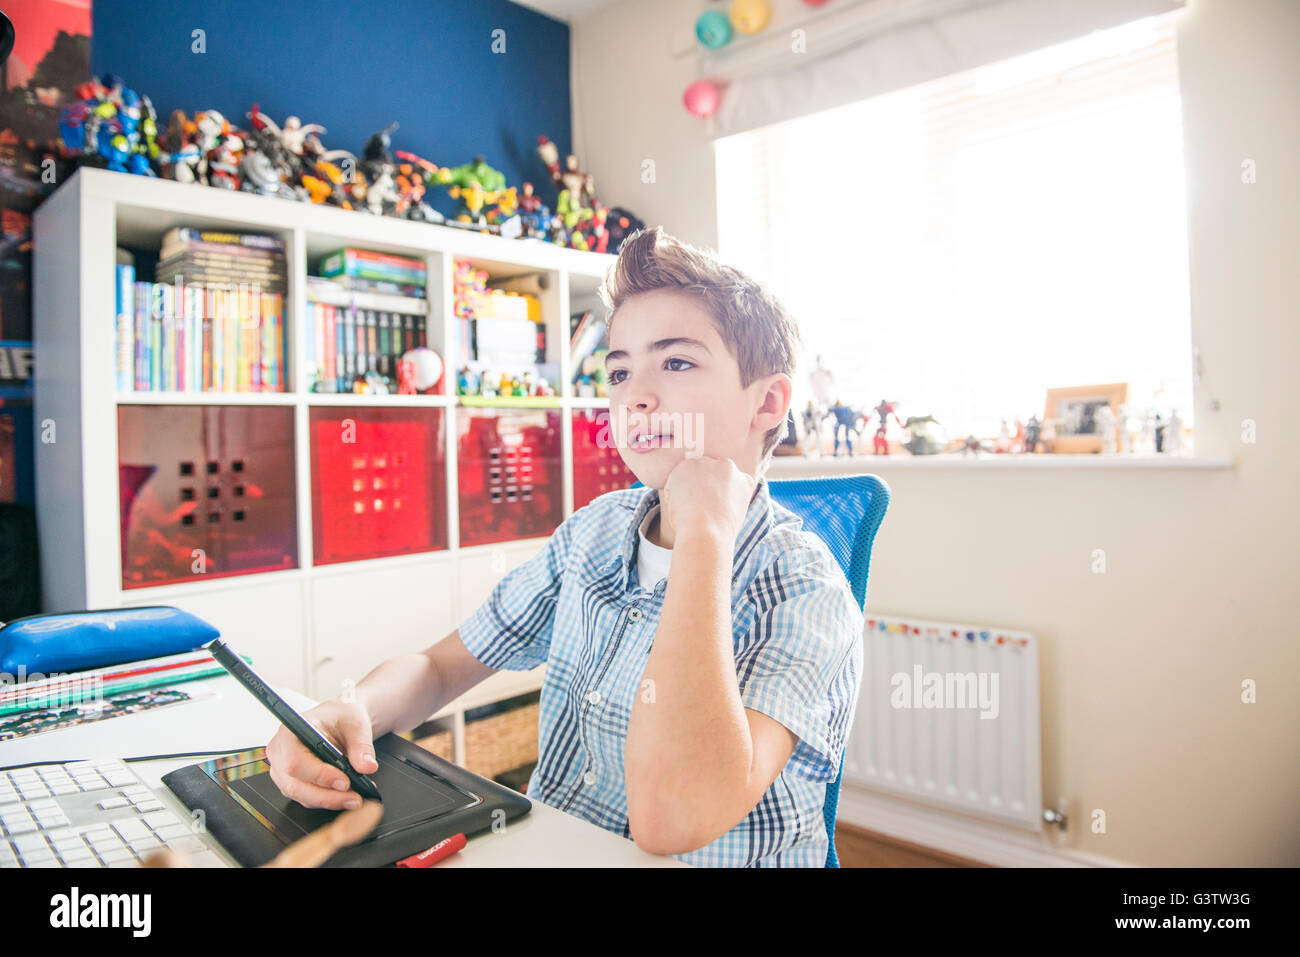 A ten year old boy sitting at a computer in his bedroom. - Stock Image